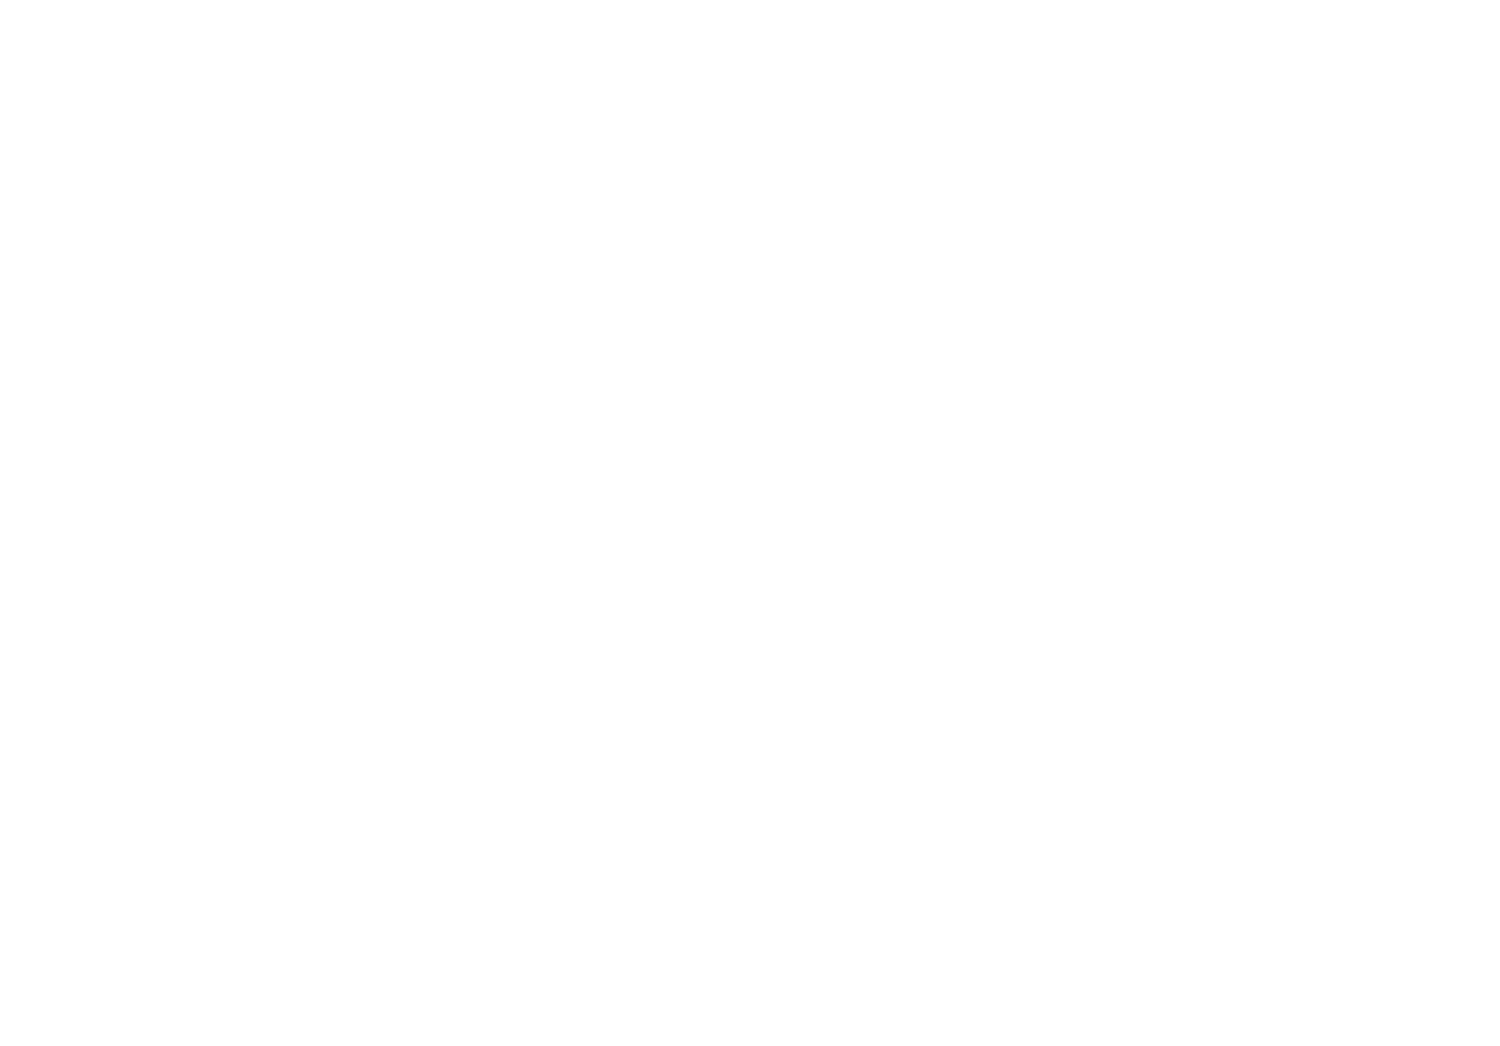 No Roads Adventure Co